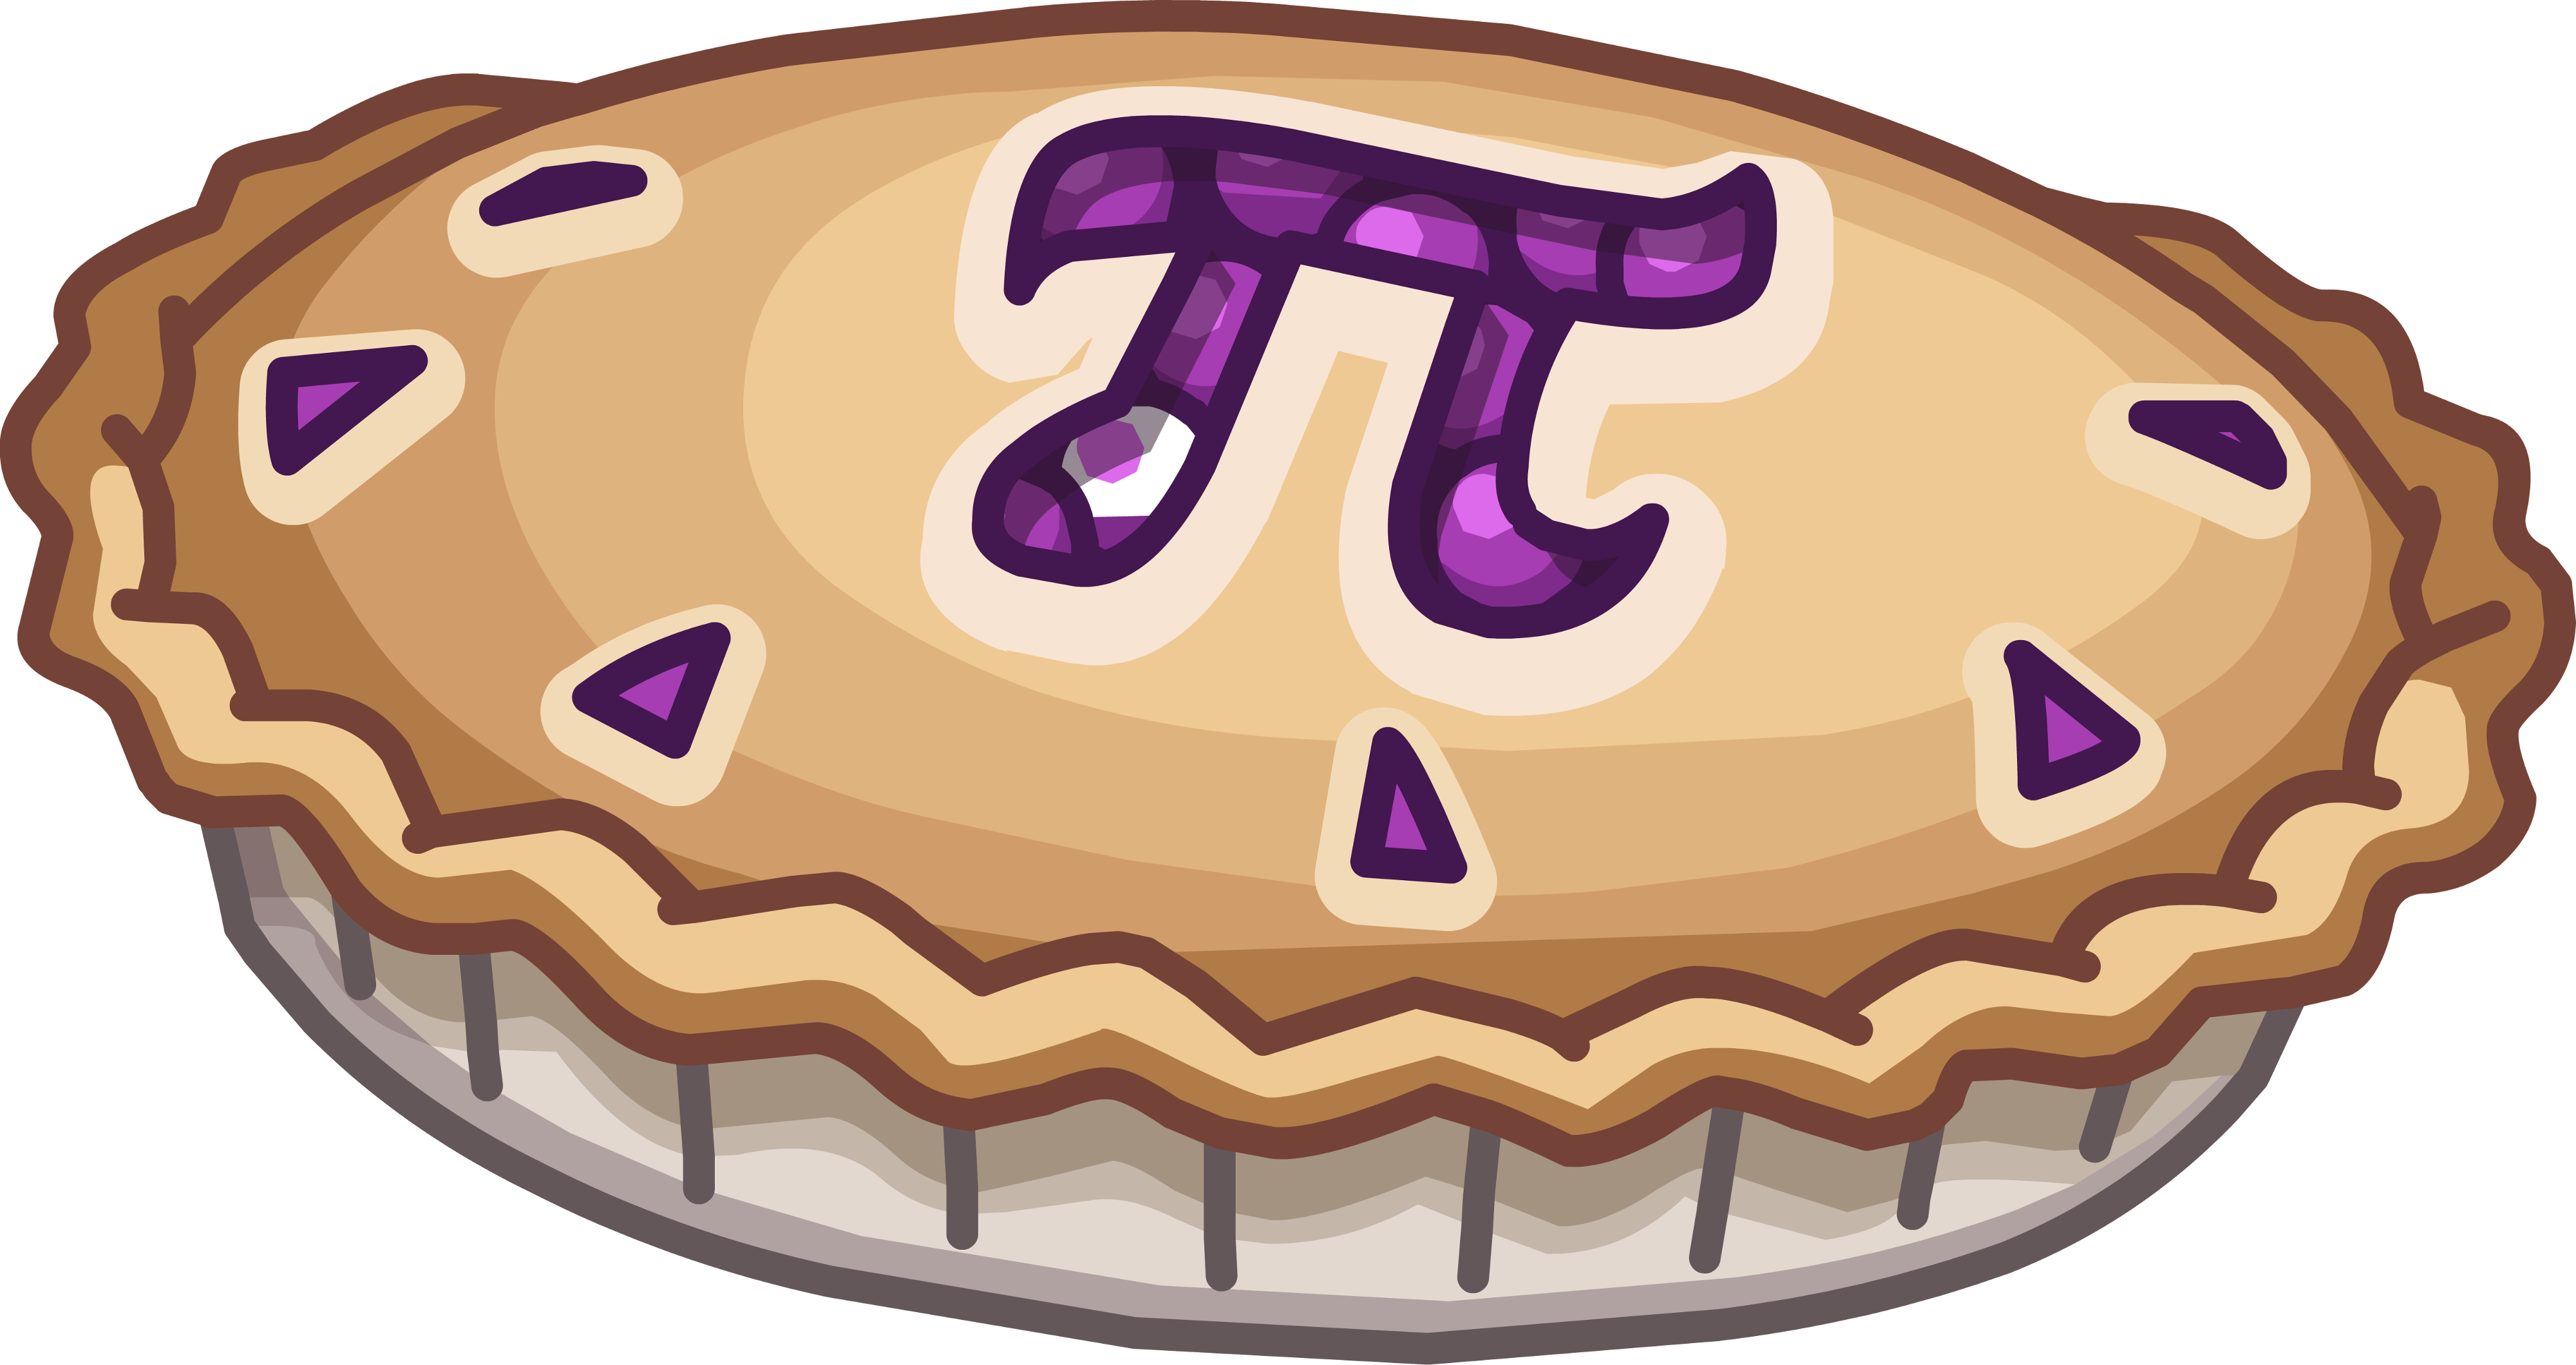 Apple pi day clipart graphic library Pi Day | Club Penguin Wiki | FANDOM powered by Wikia graphic library